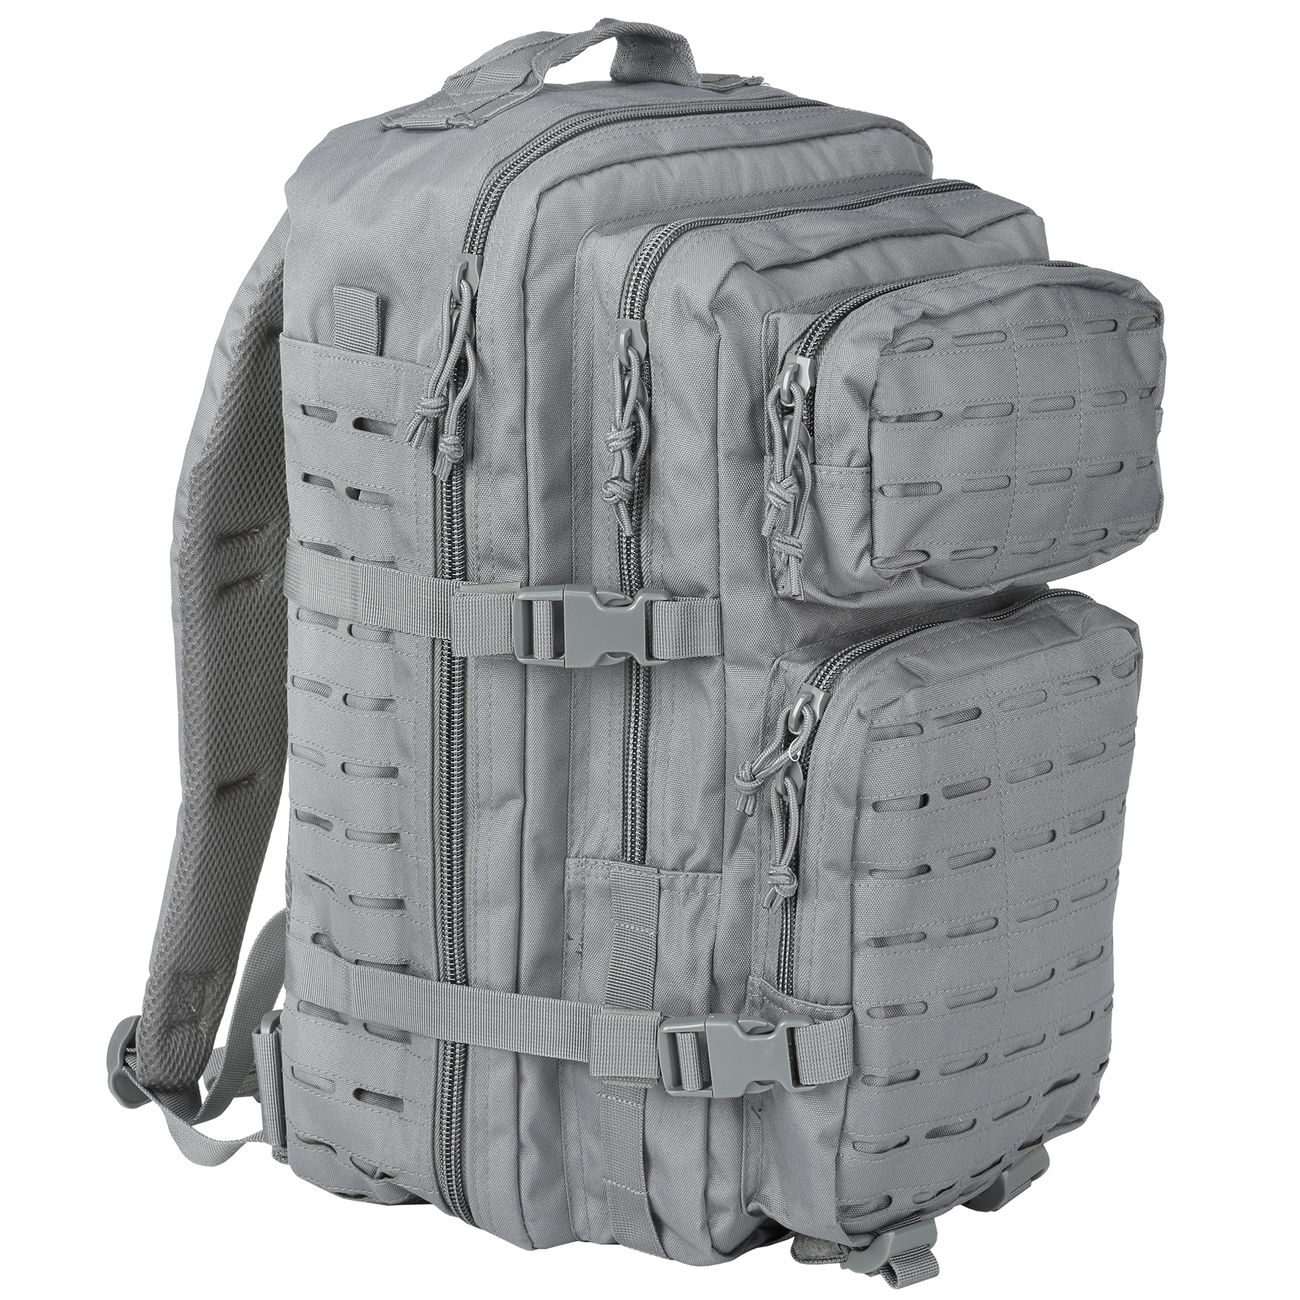 Mil-Tec Rucksack US Assault Pack Laser Cut large 36L Urban grey 0